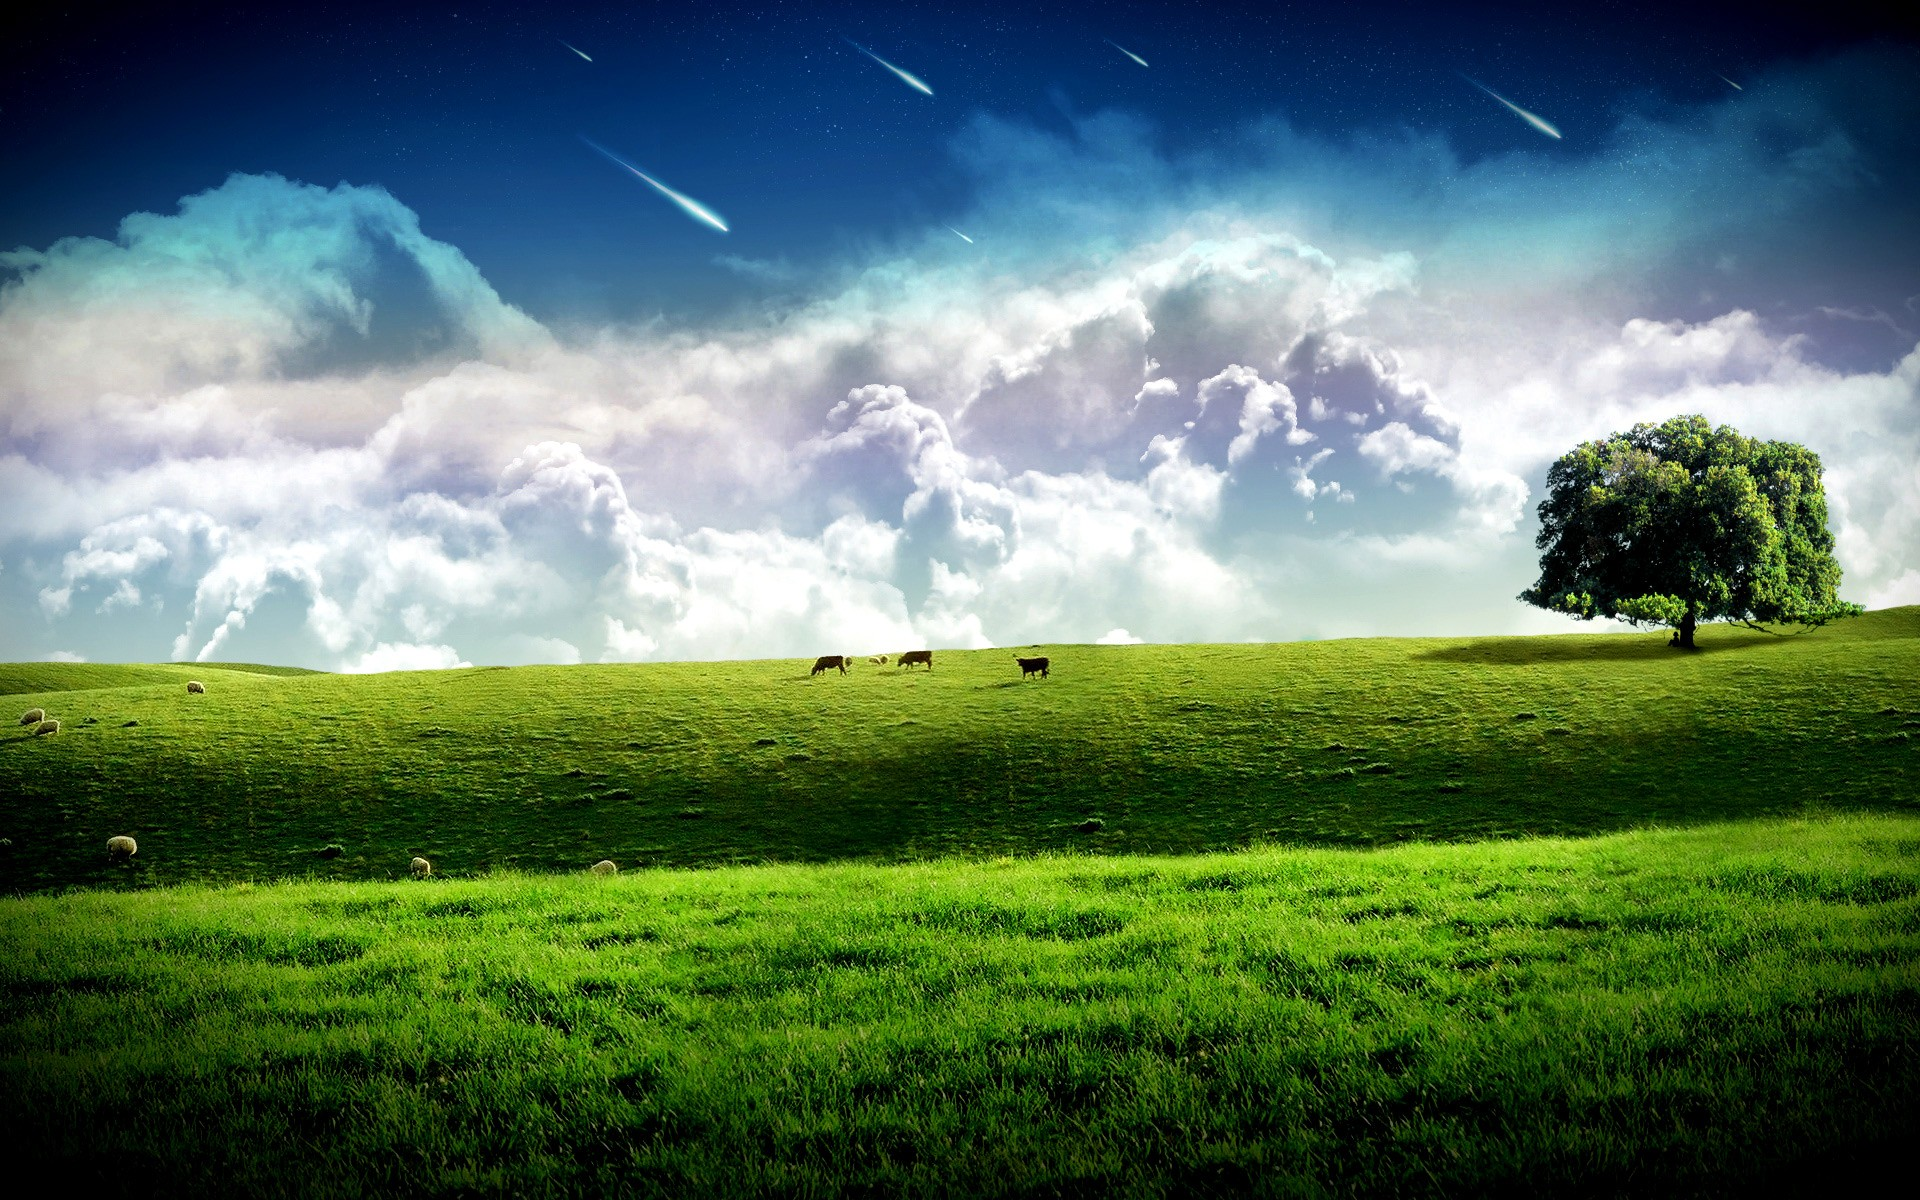 Landscapes wallpaper wallpapers desktop landscape fantasy imagepages 828